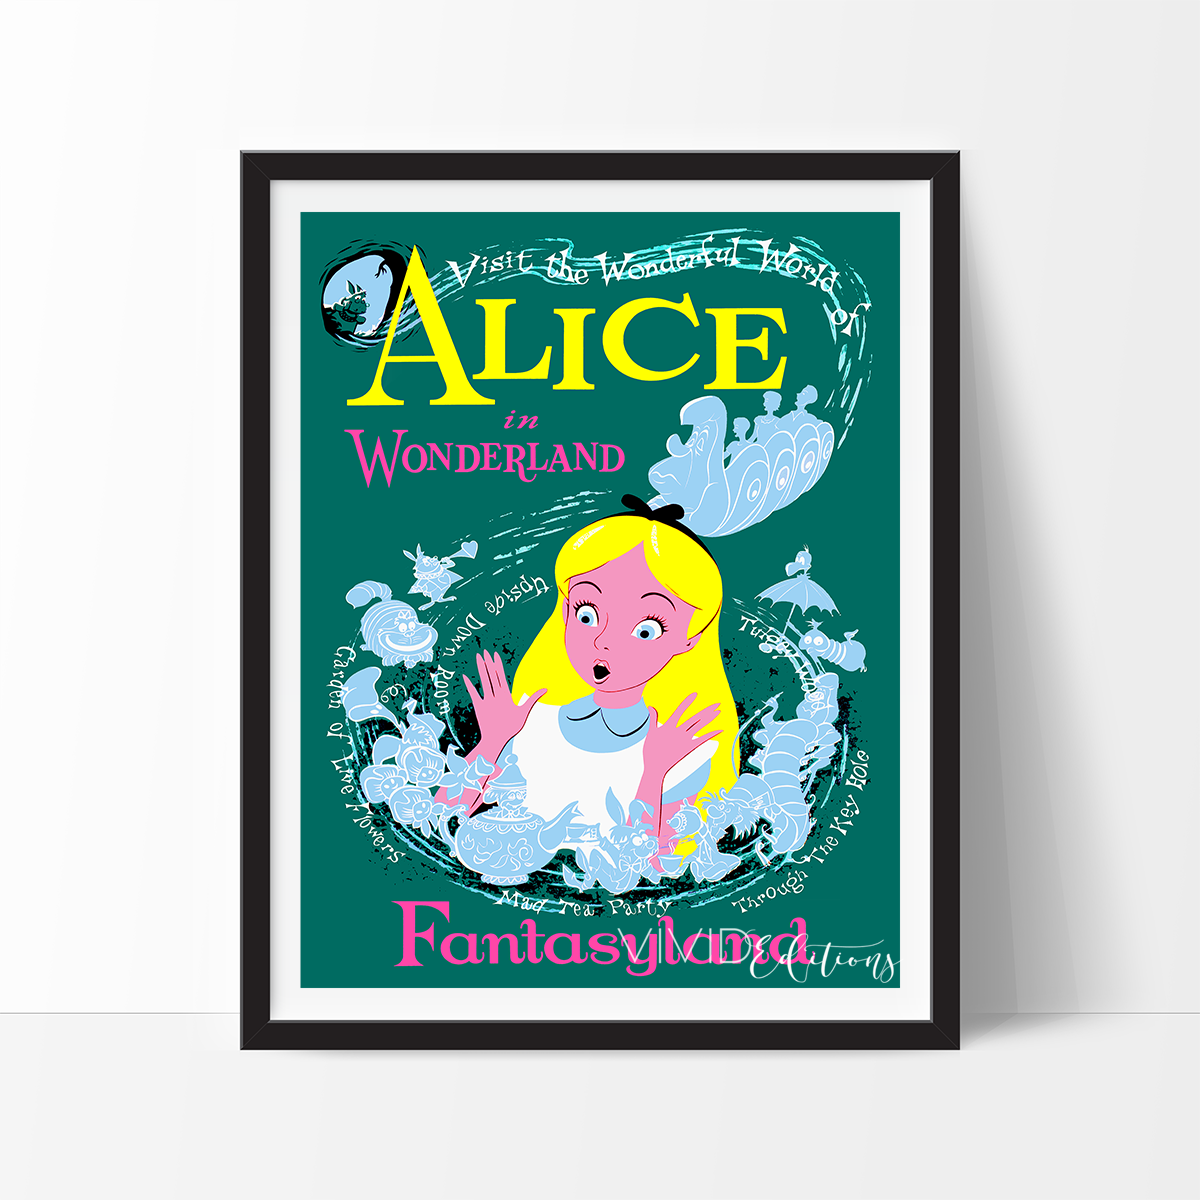 Vintage Alice in Wonderland Disneyland Attraction Poster Available in 4 Sizes